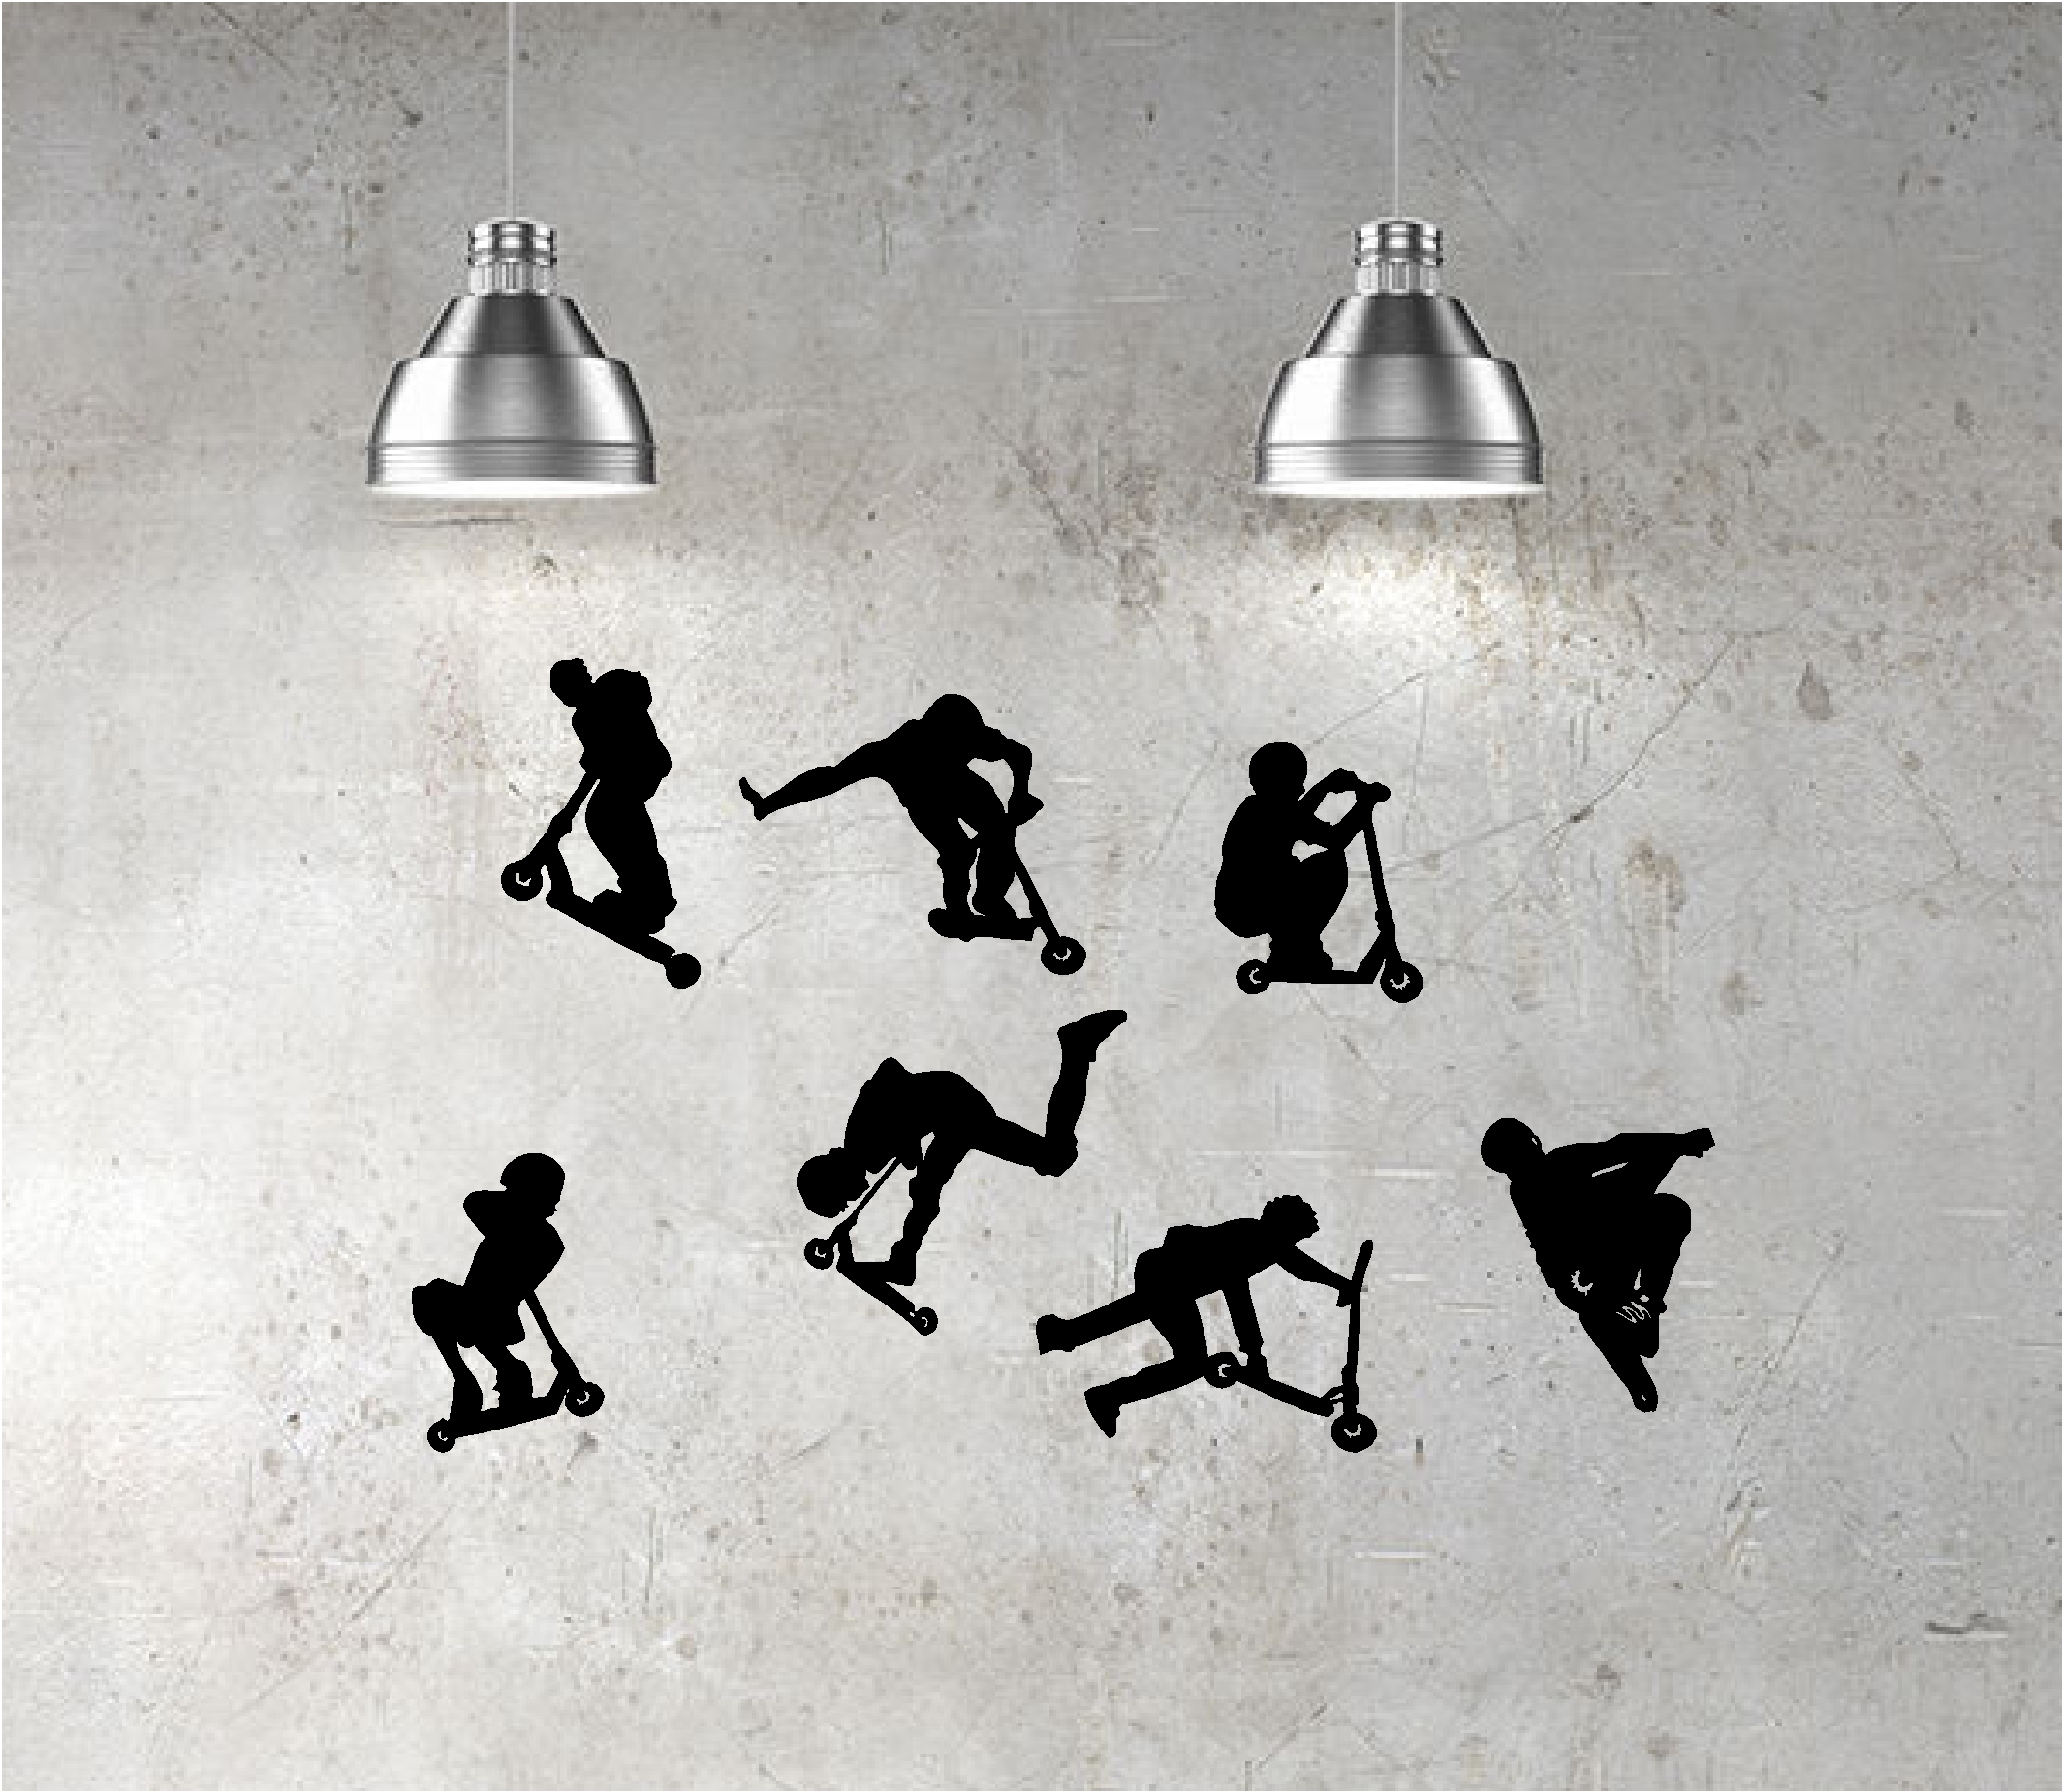 7 x stunt scooter wall art stickers kids bedroom decal scooters jd 7 x stunt scooter riders vinyl wall art amipublicfo Gallery